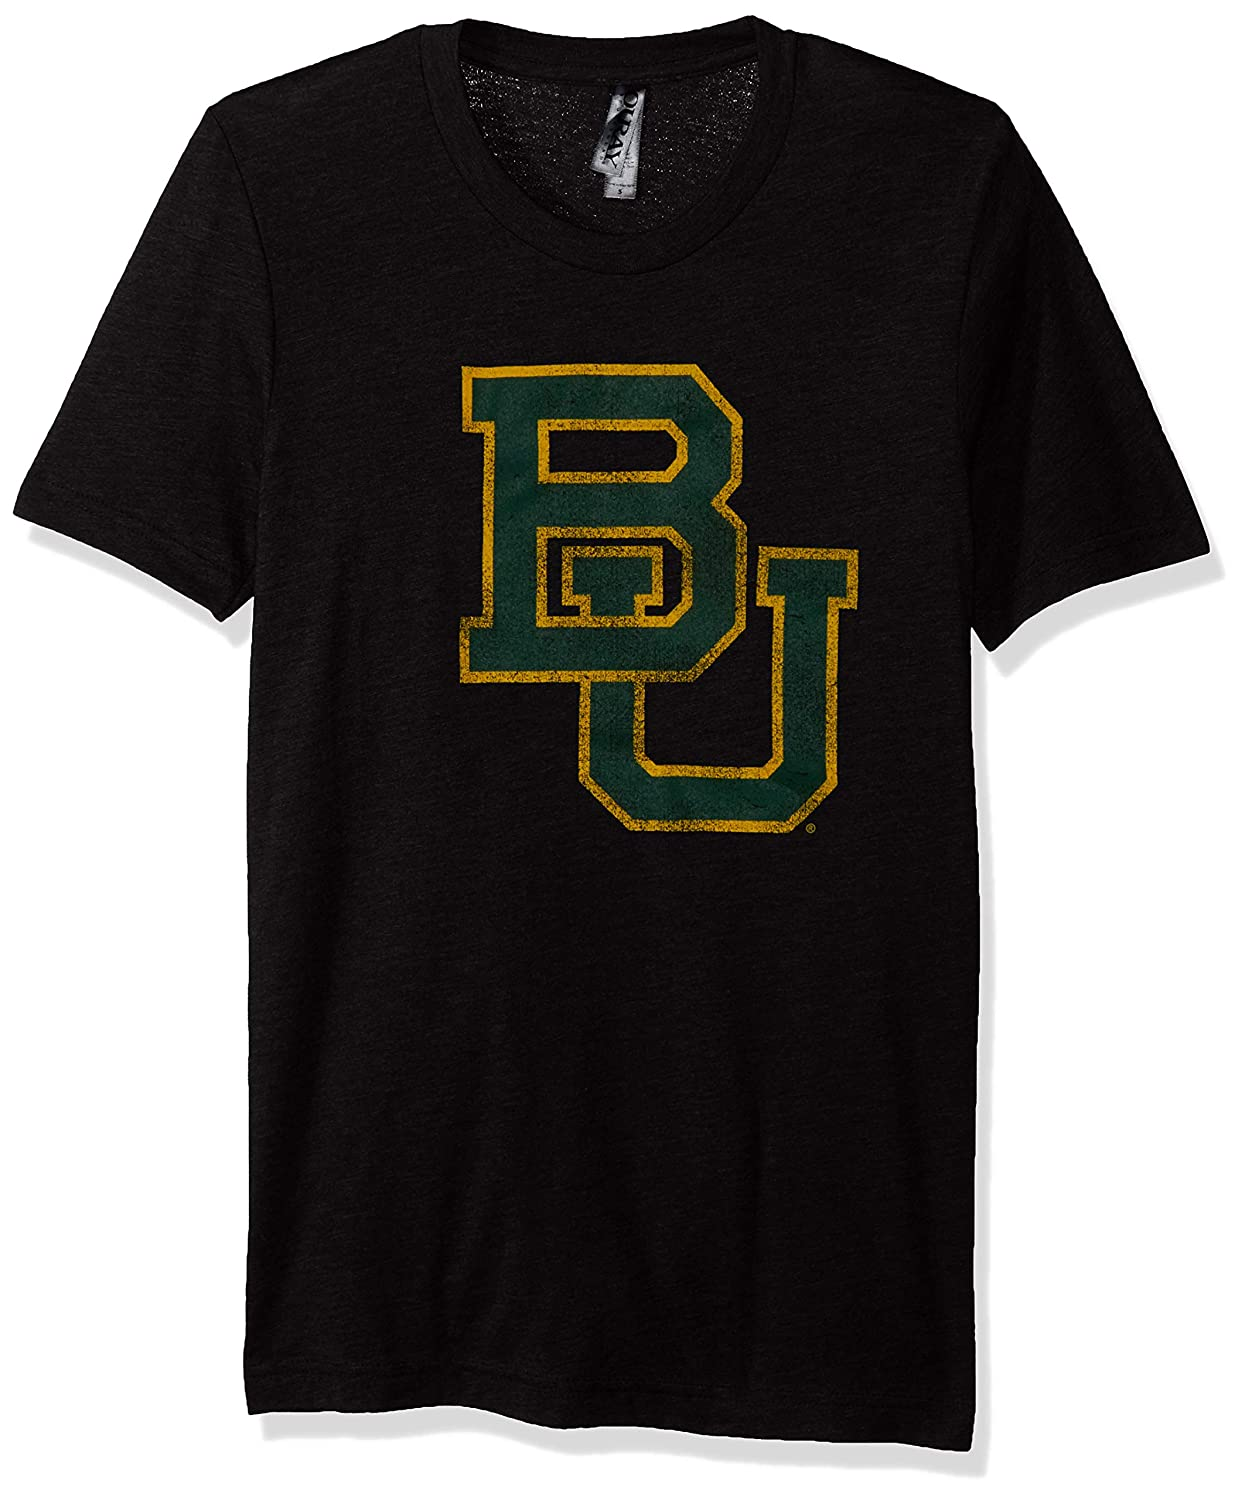 Large NCAA Baylor Bears Mens Tri Blend Short Sleeve Tee Vintage Black